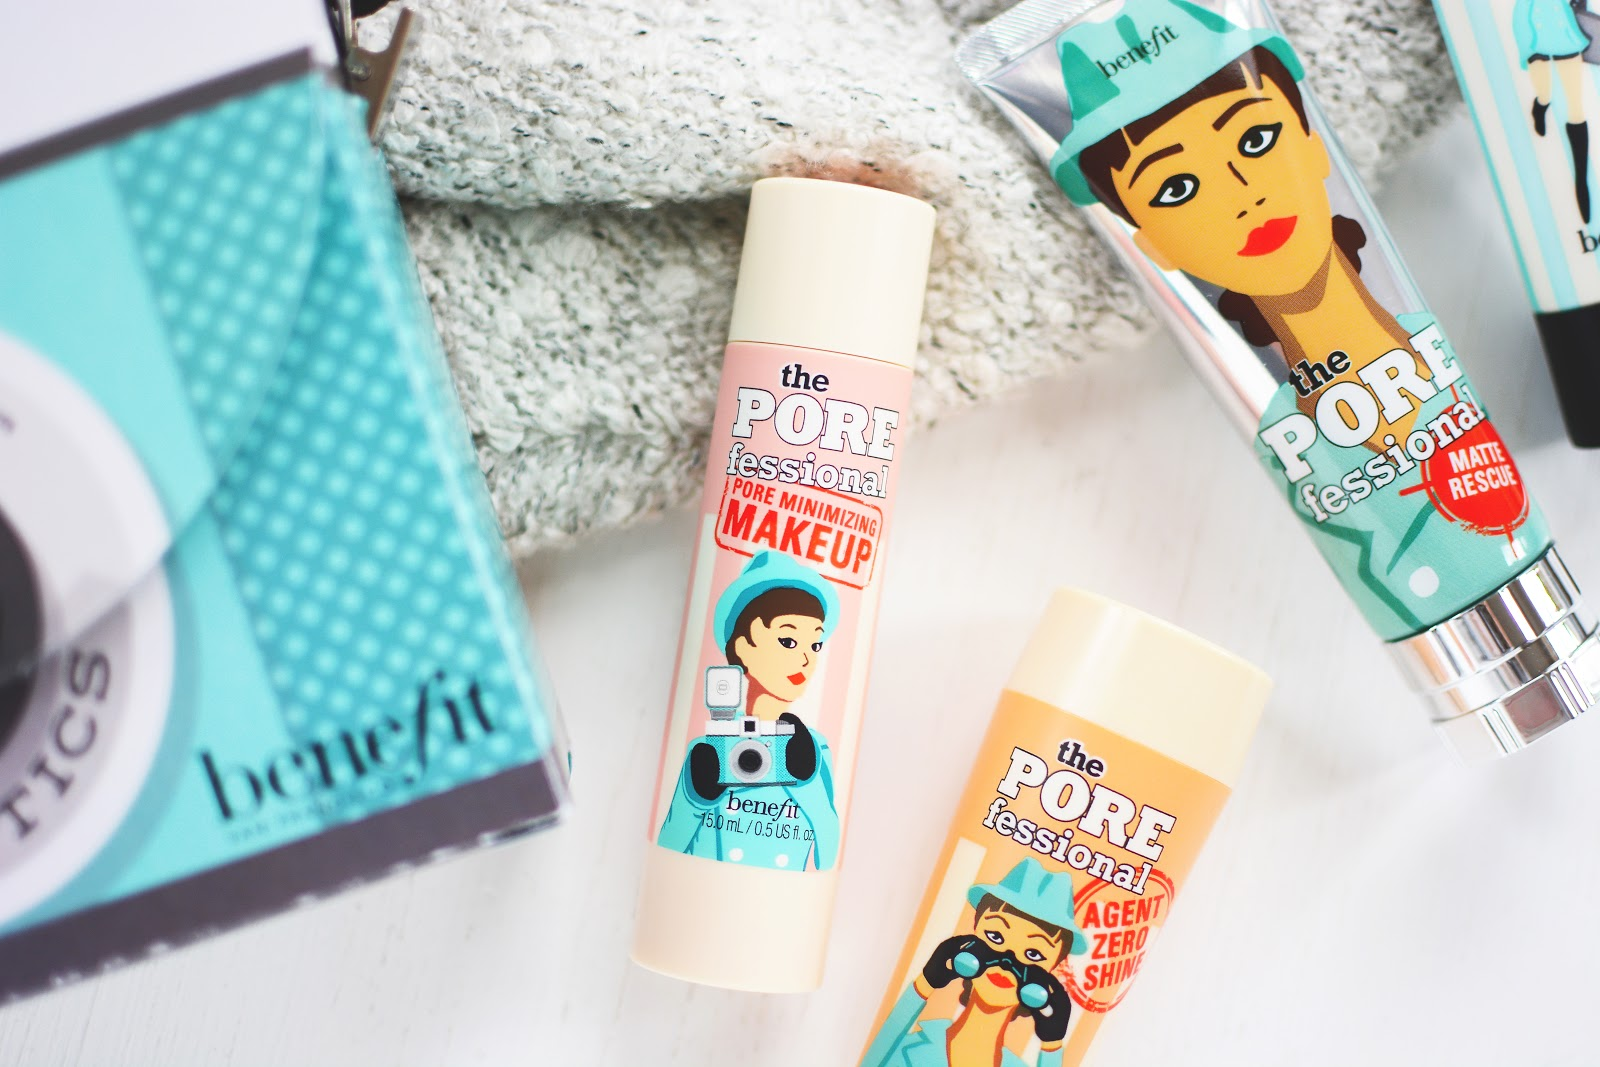 Benefit Cosmetics Pore Minimizing Make-Up